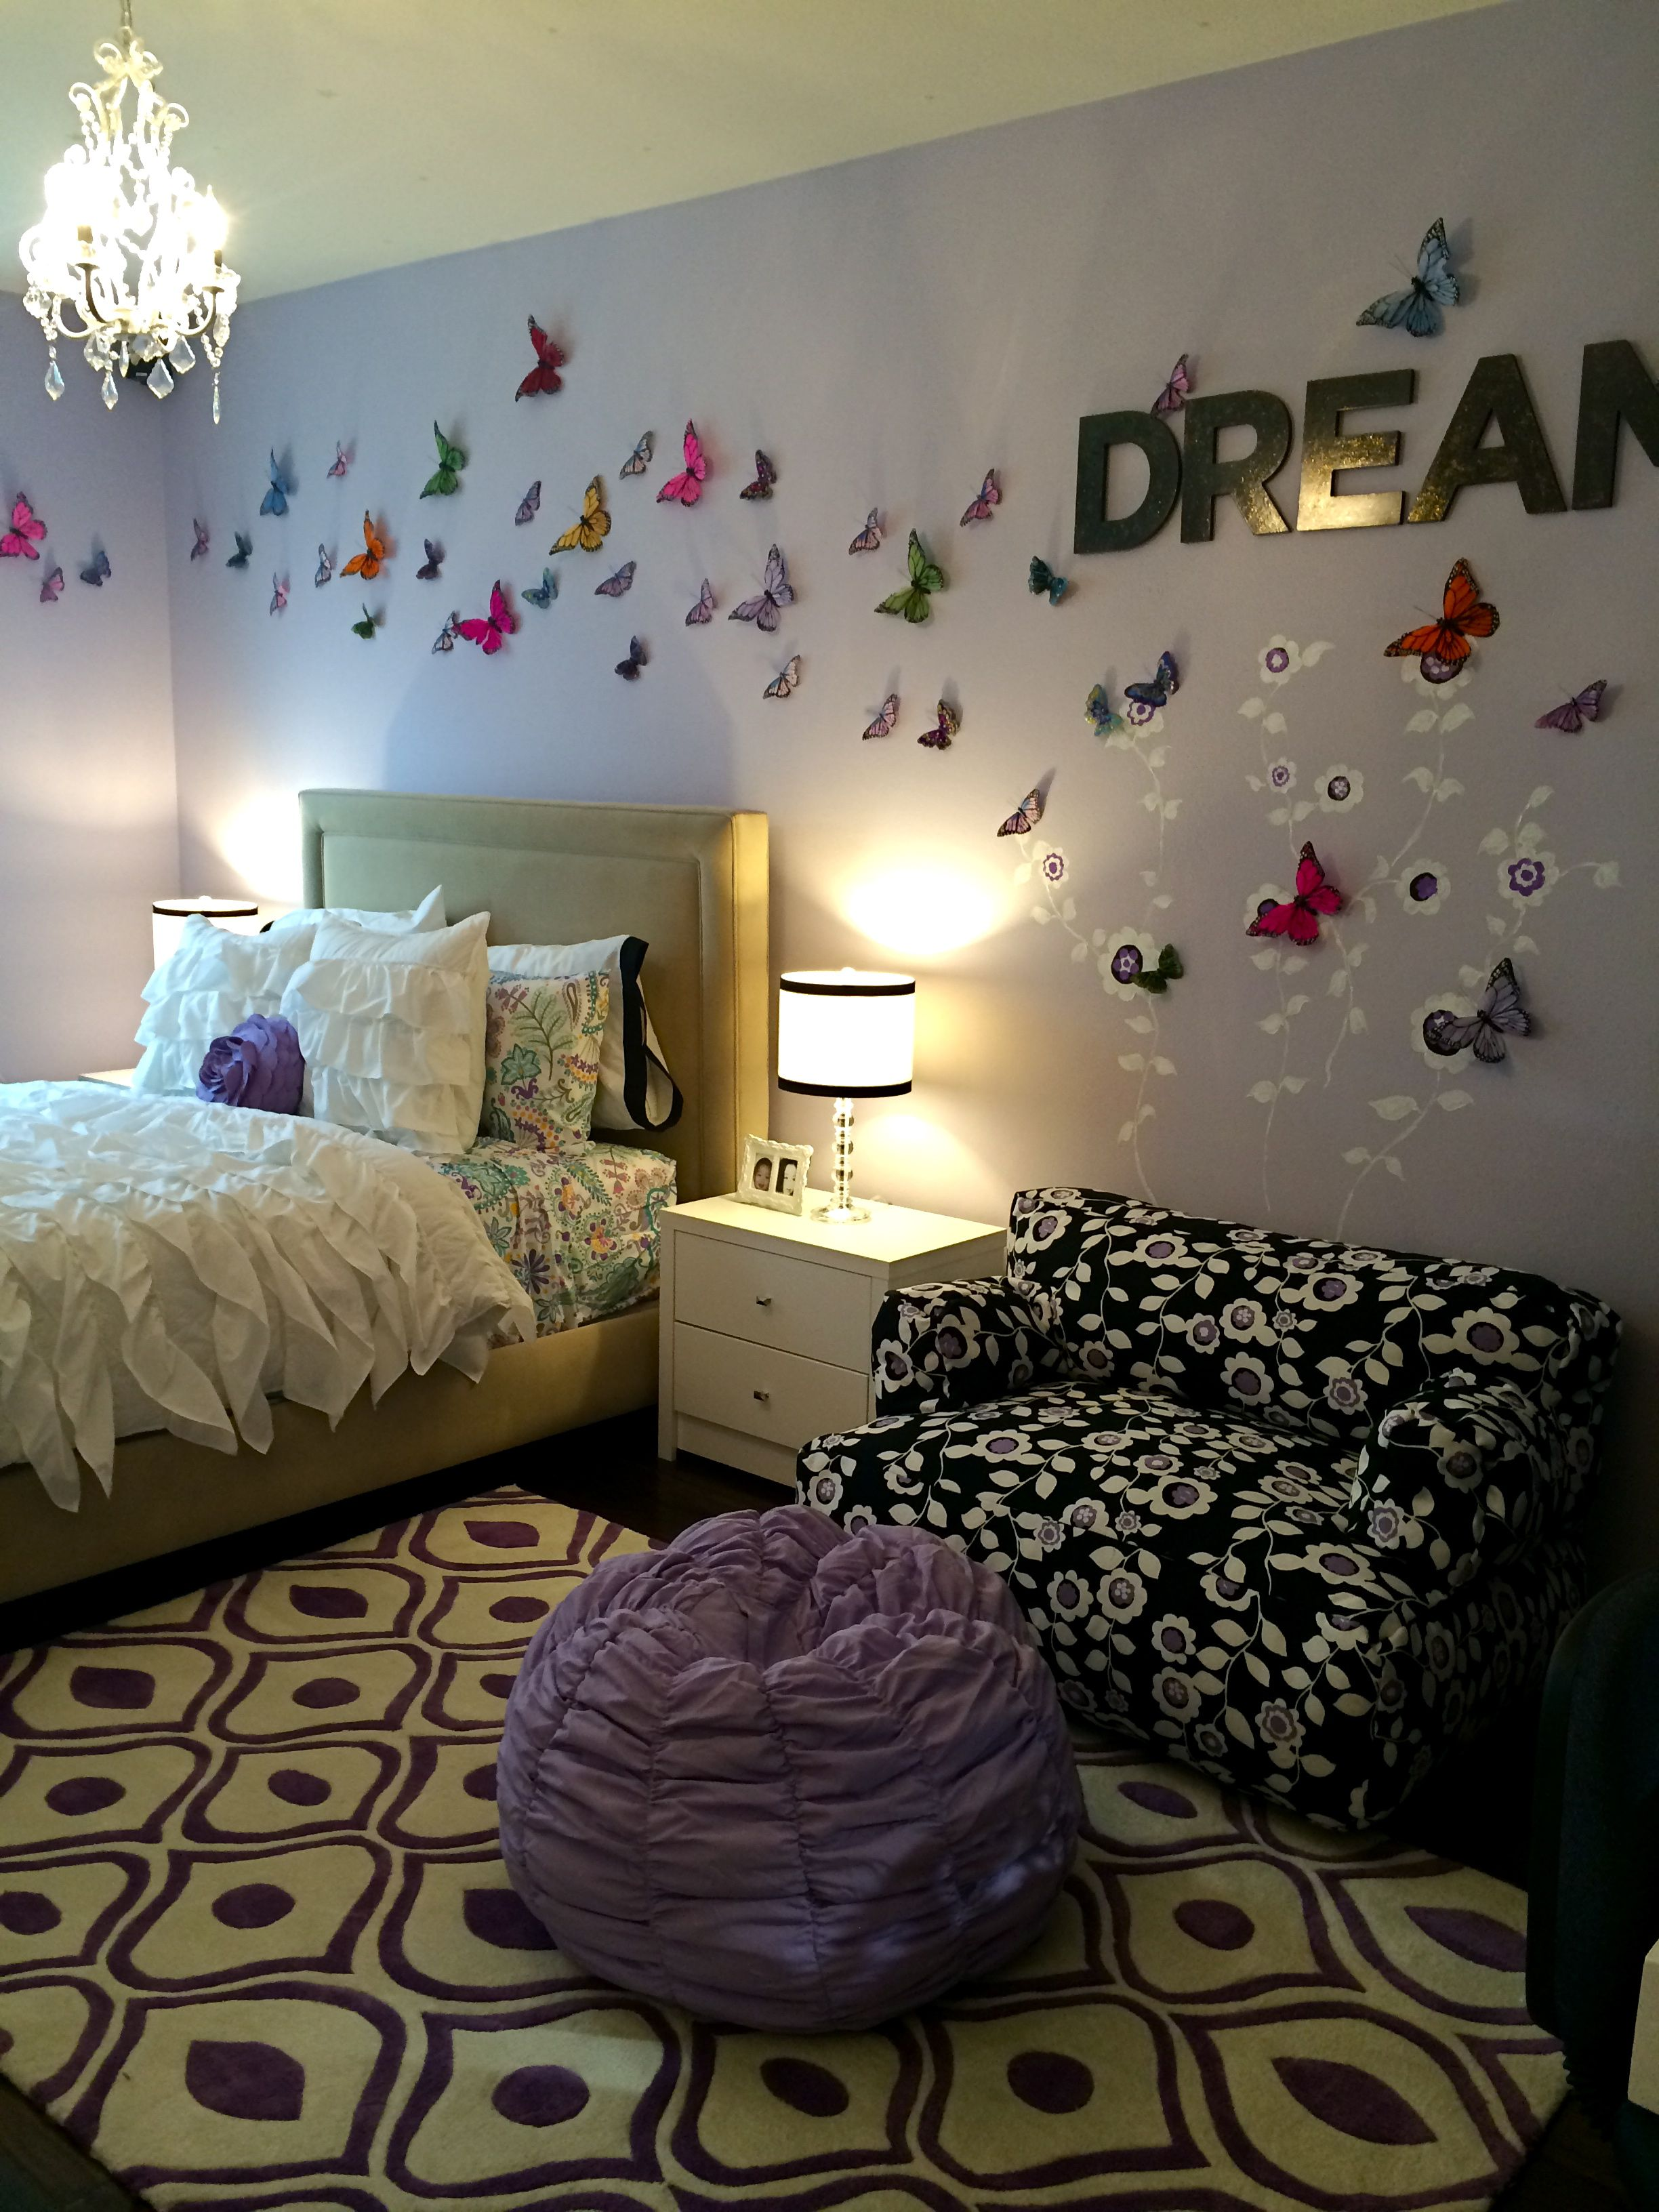 A 10 year old girls dream bedroom contact for 8 year old room decor ideas